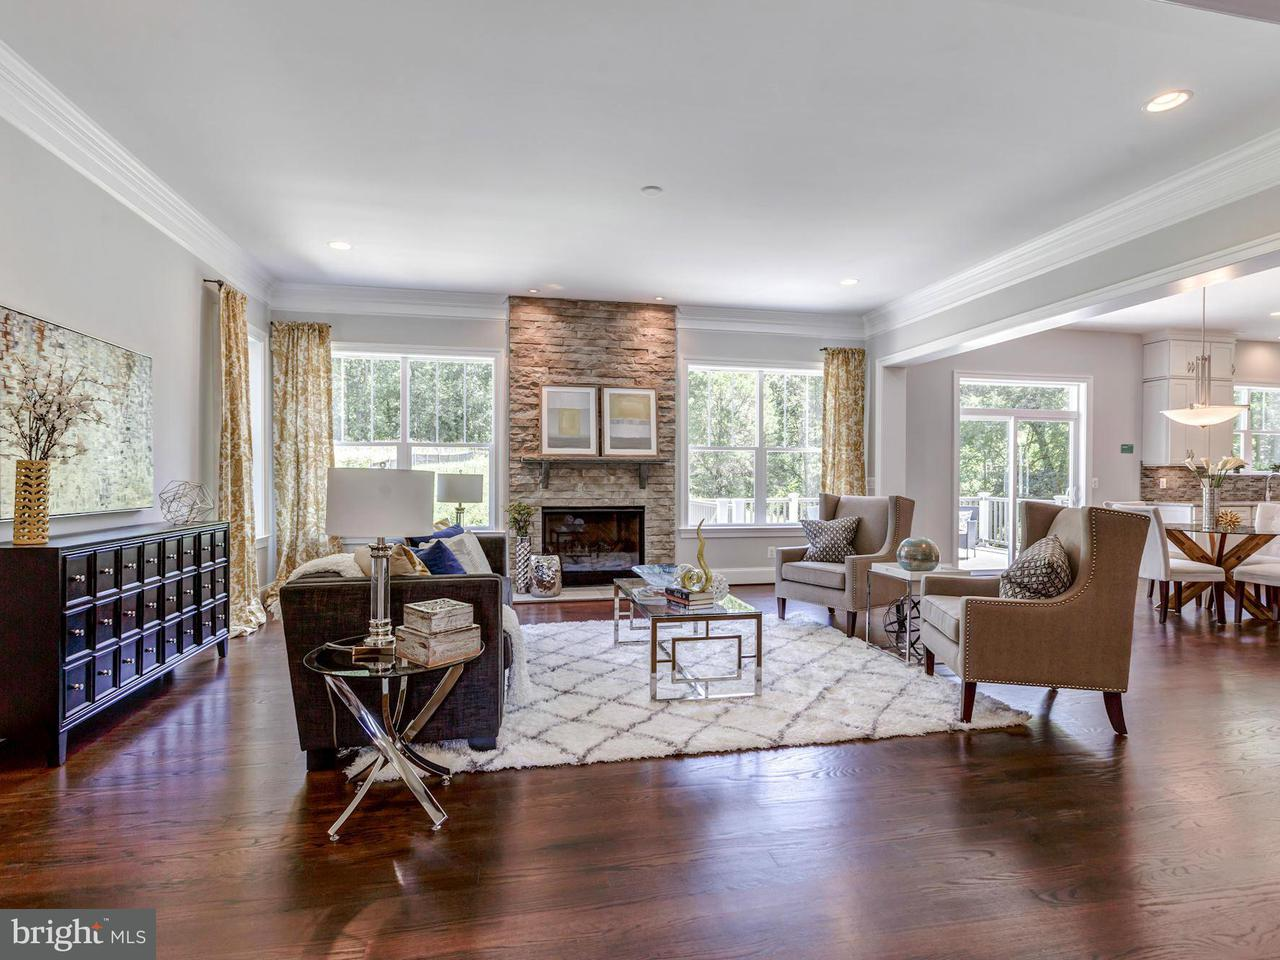 Additional photo for property listing at 11311 Bellmont Drive 11311 Bellmont Drive Fairfax, Virginia 22030 United States